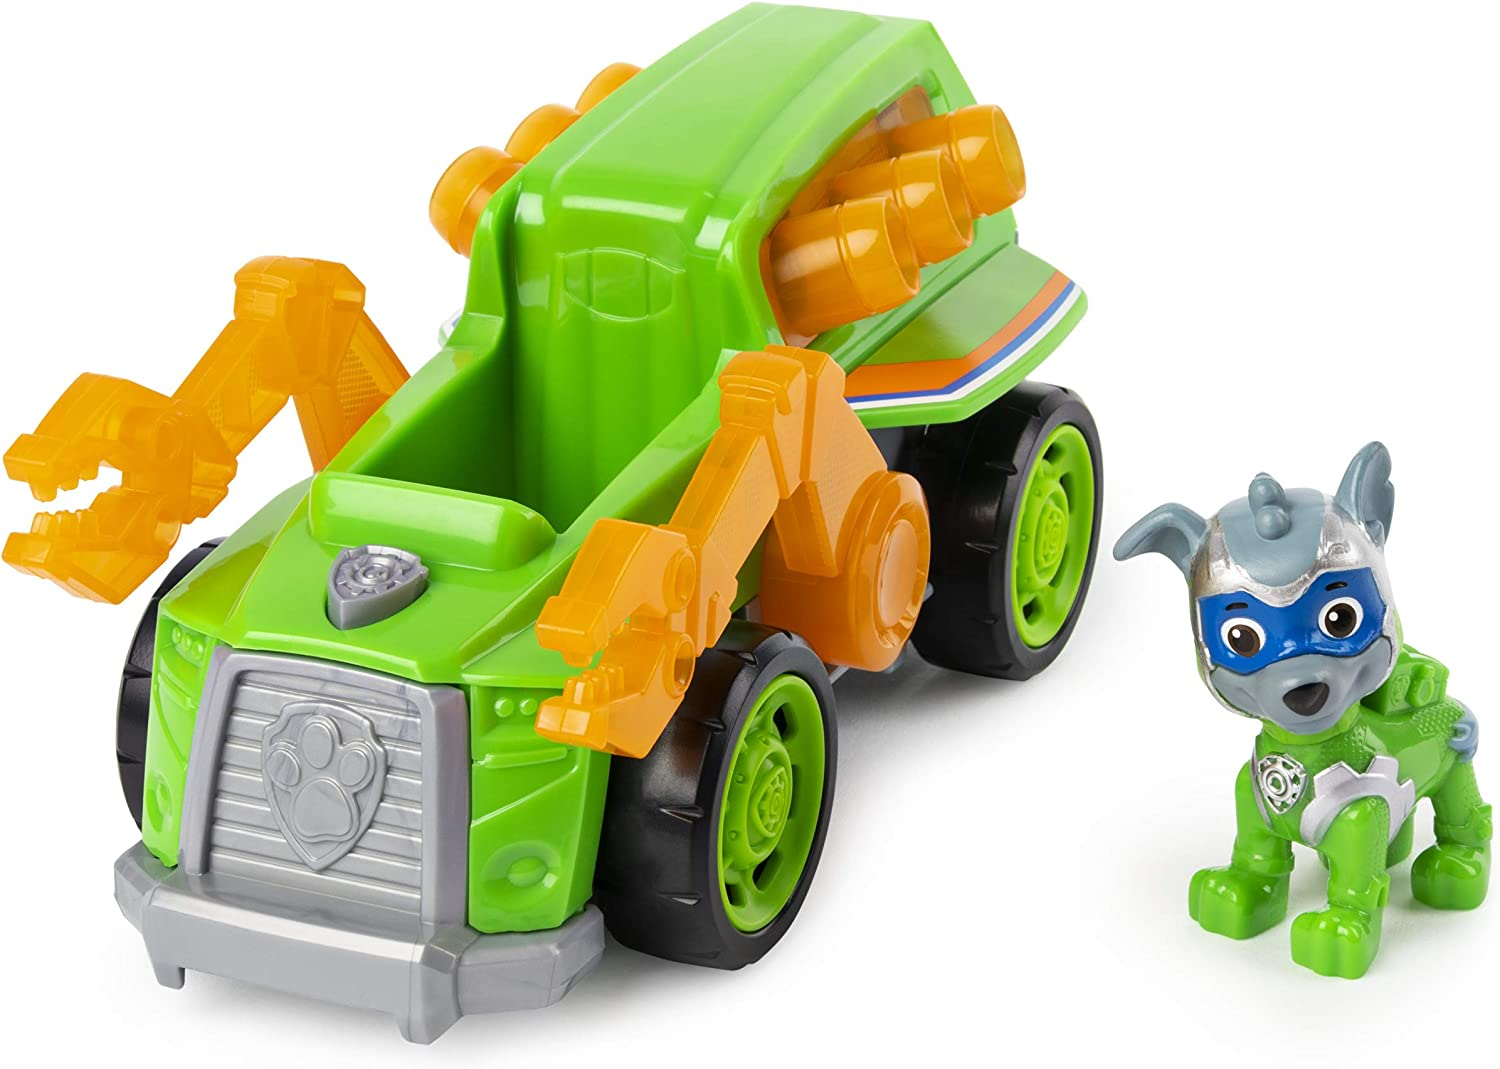 Paw Patrol Mighty Pups Super Paws Rocky S Deluxe Vehicle With Lights And Sounds